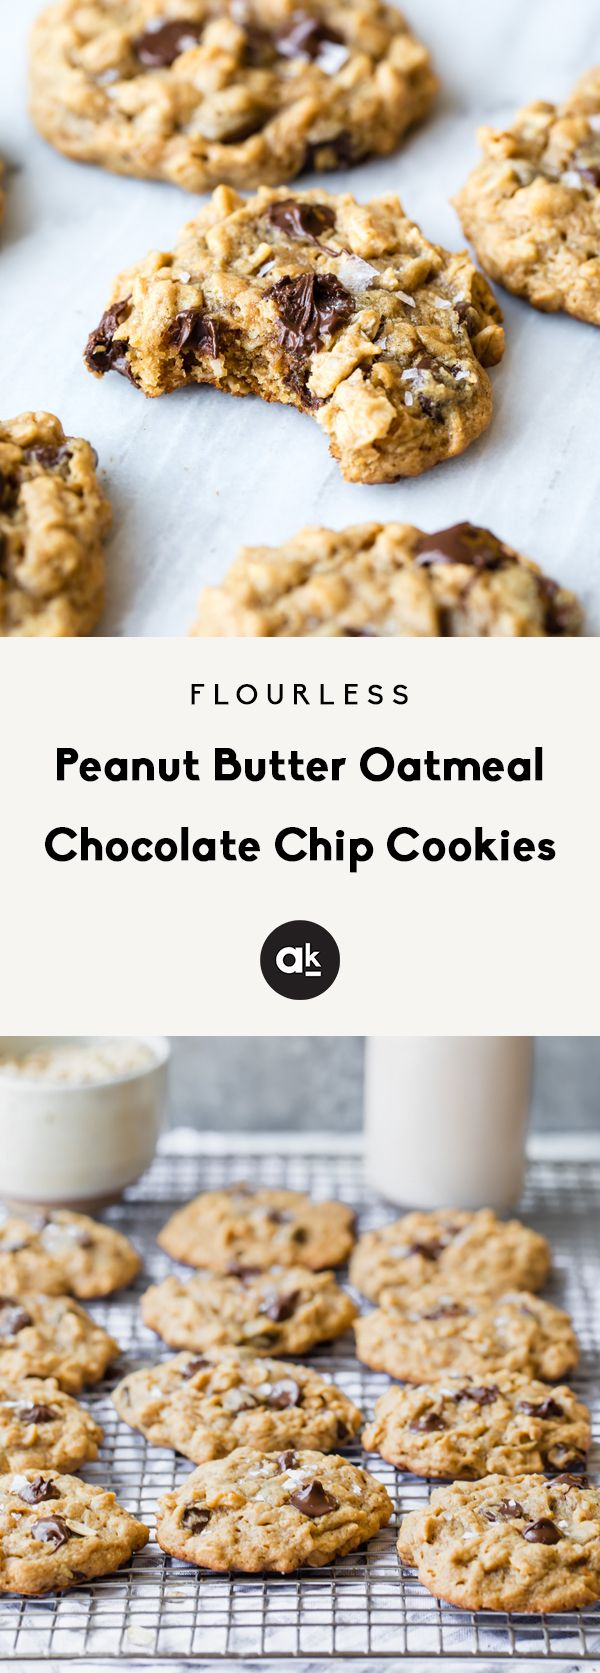 Flourless Peanut Butter Oatmeal Chocolate Chip Cookies #peanutbuttersquares